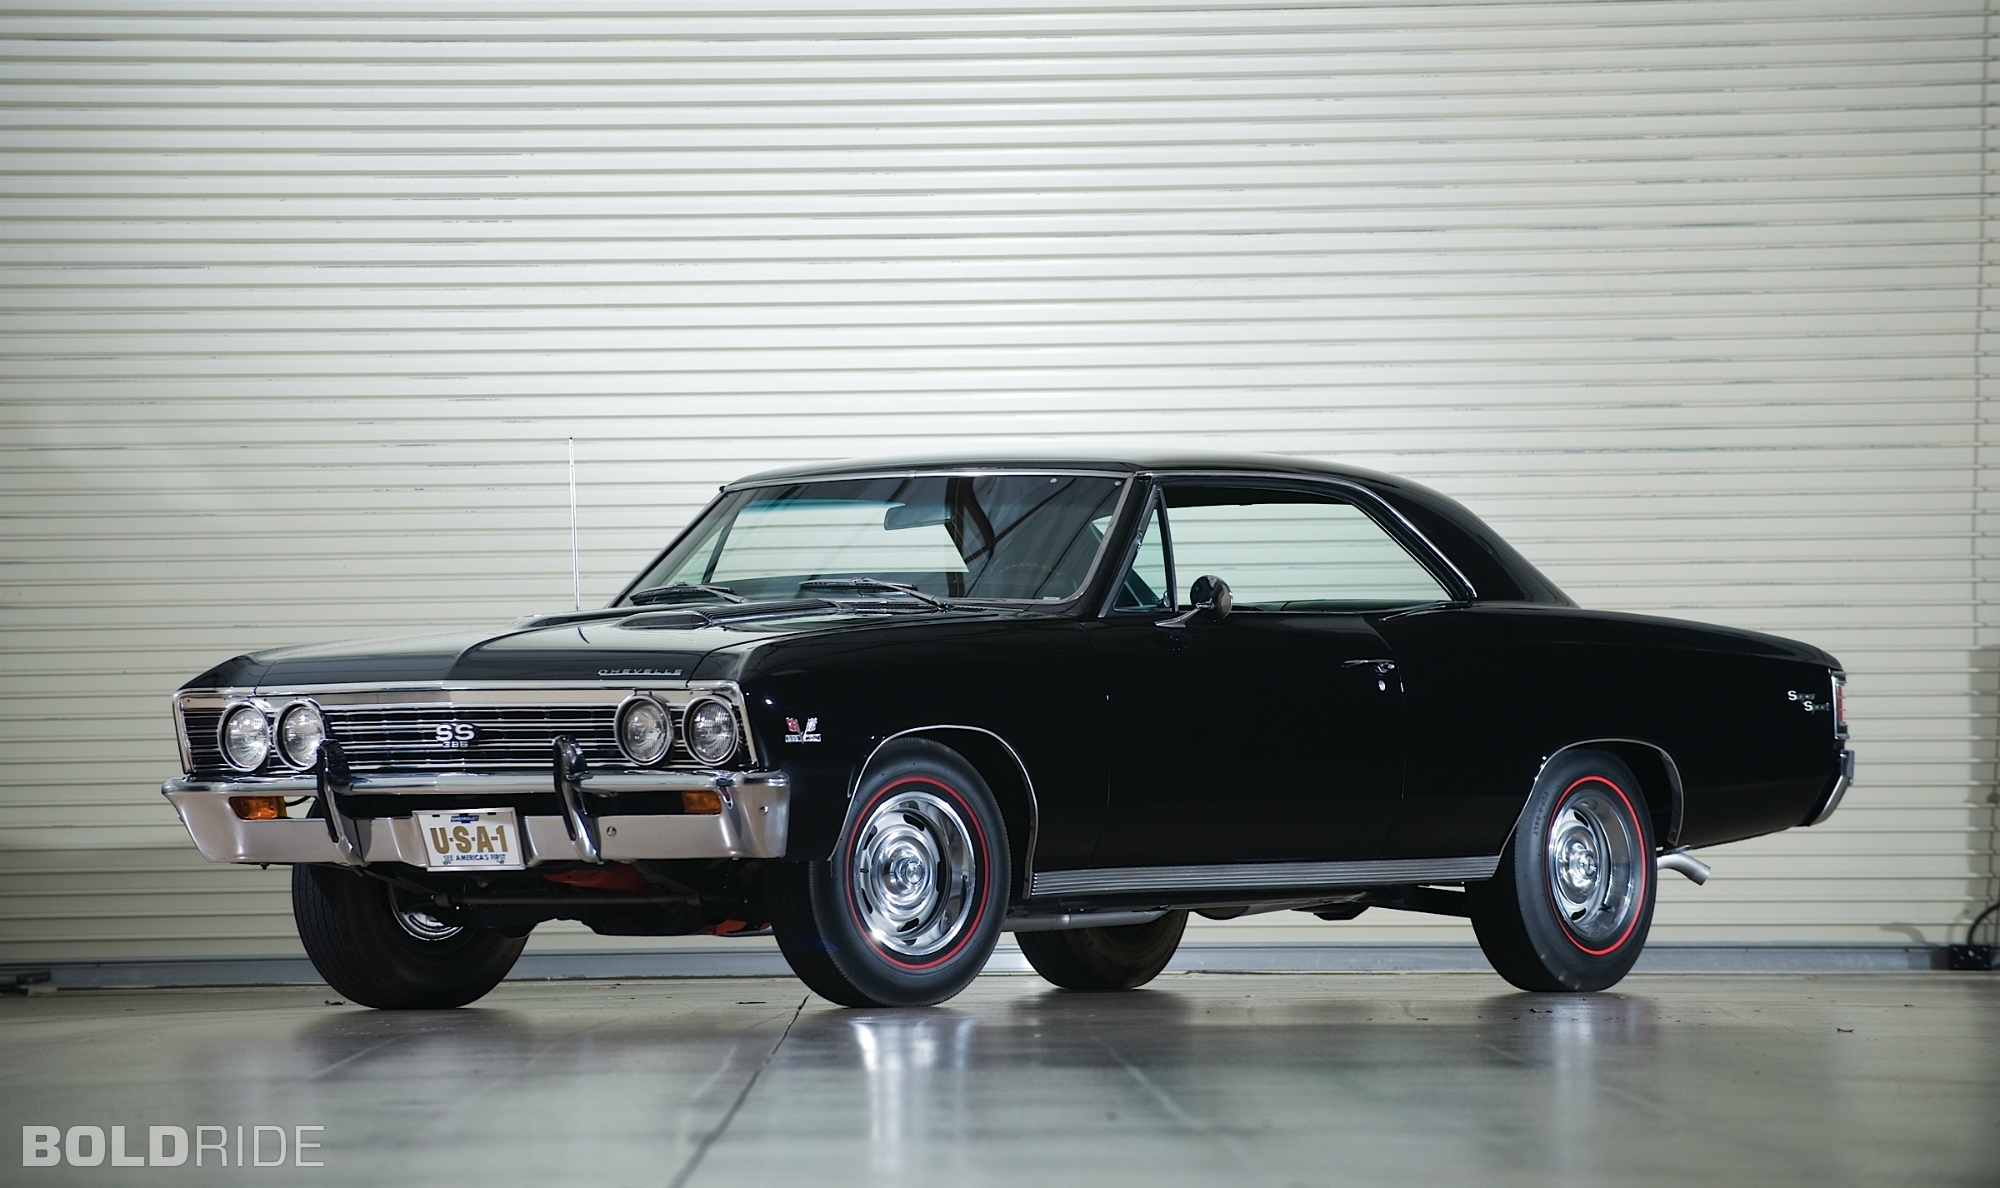 1967 chevrolet chevelle ss 396 2 door hardtop front 3 4 44313 - 1967 Chevy Chevelle Ss 454